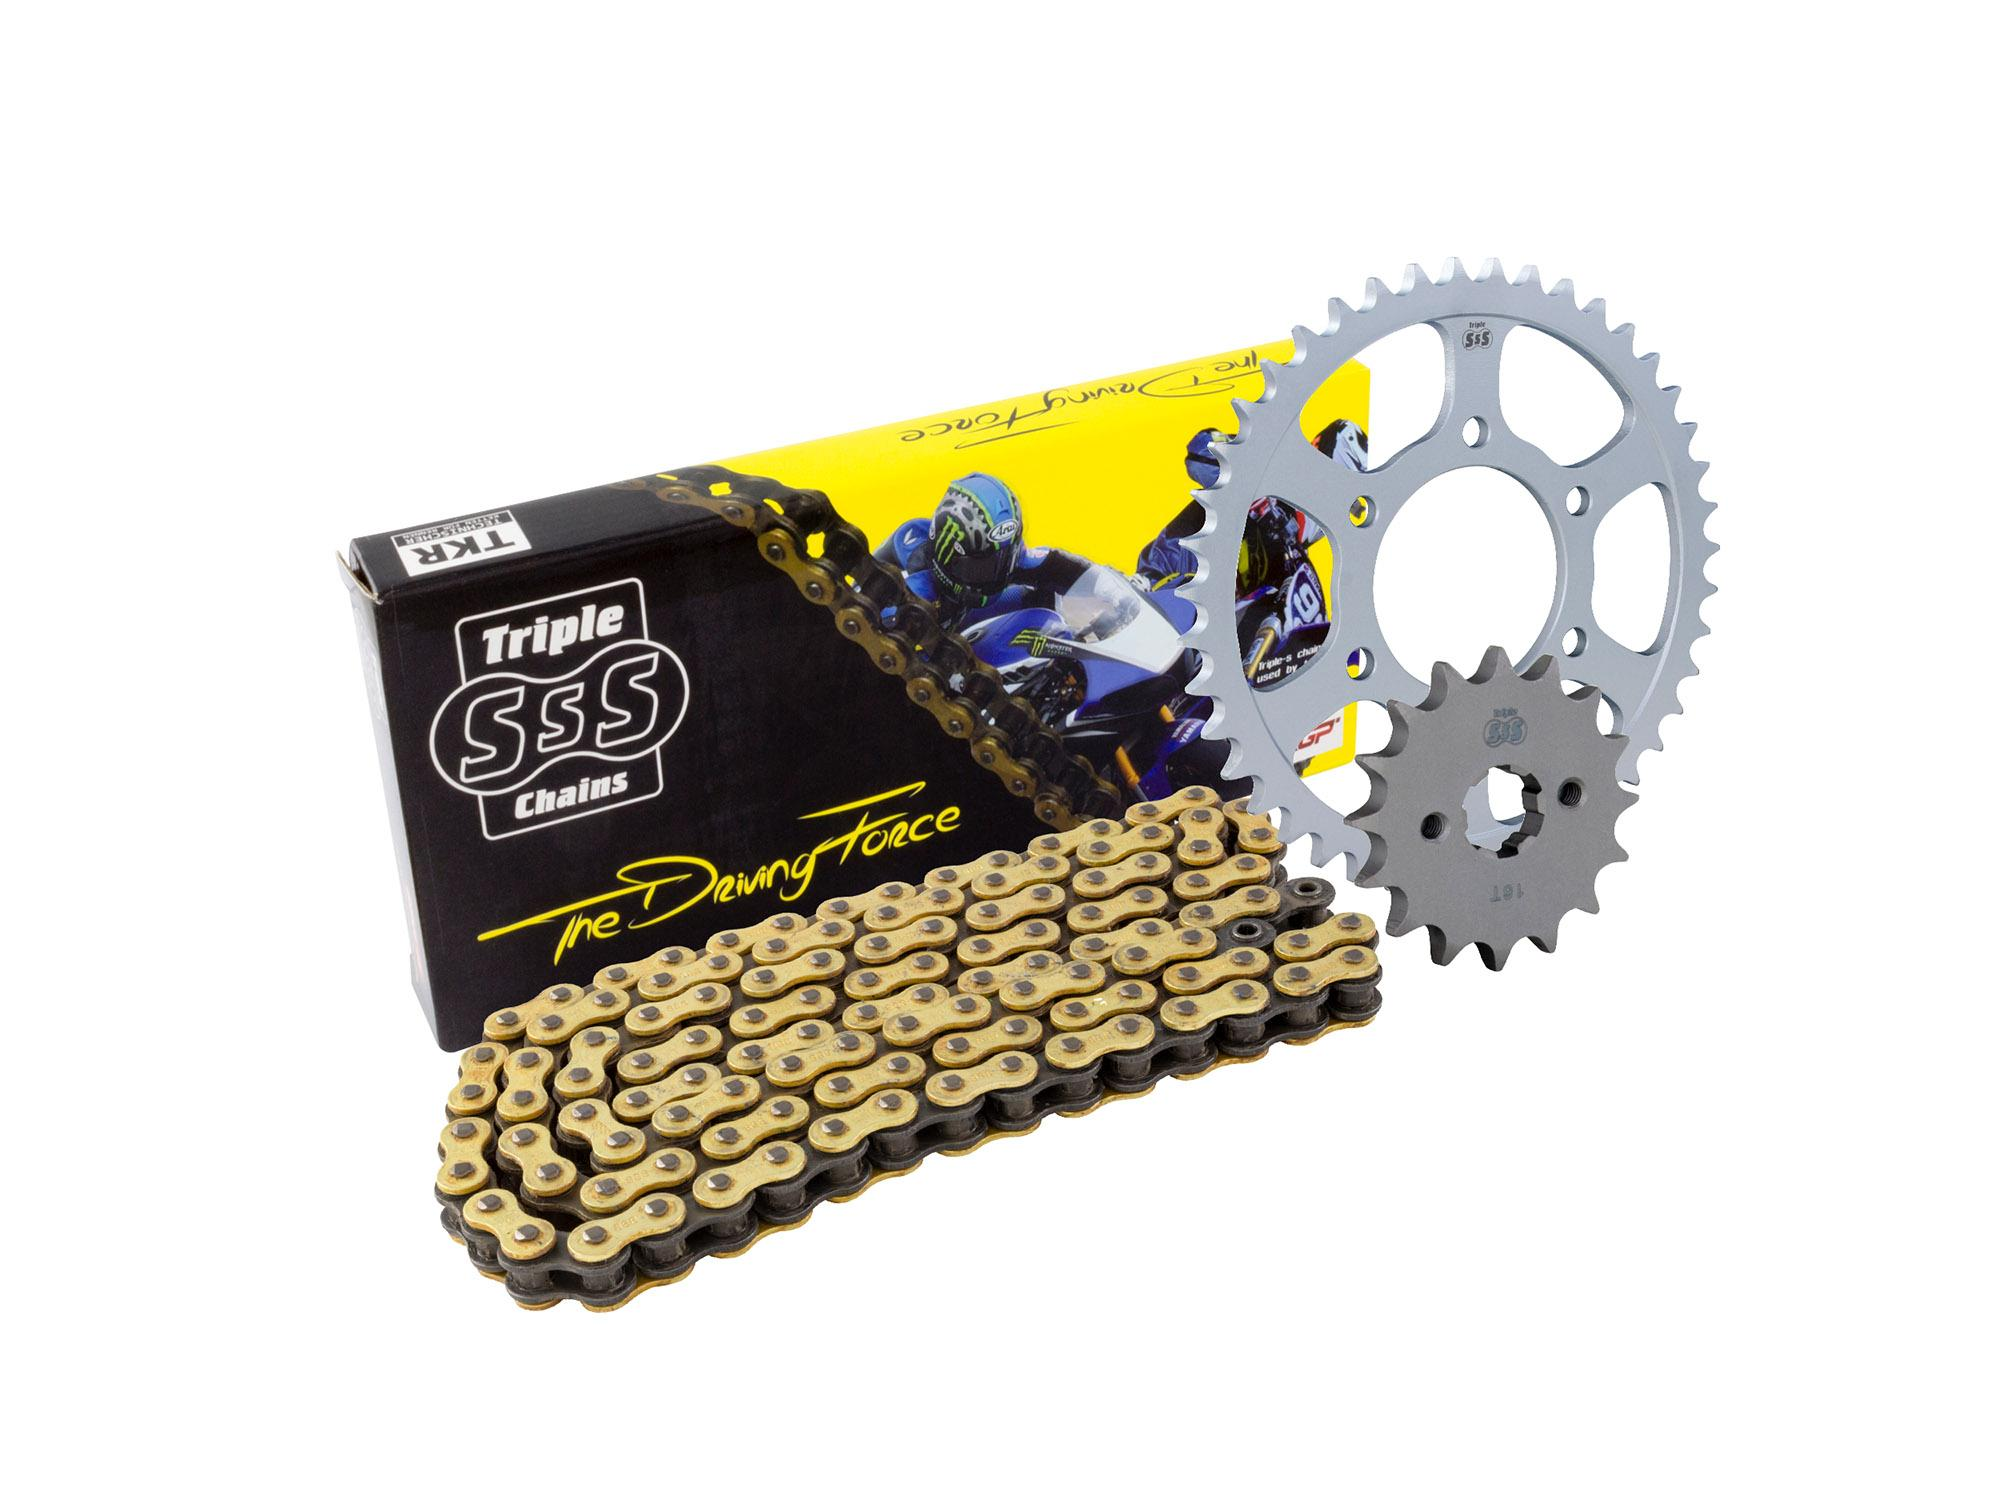 Honda VTR1000 SP-2 02-06 Chain & Sprocket Kit: 16T Front, 40T Rear, HD O-Ring Gold Chain 530H 106Link